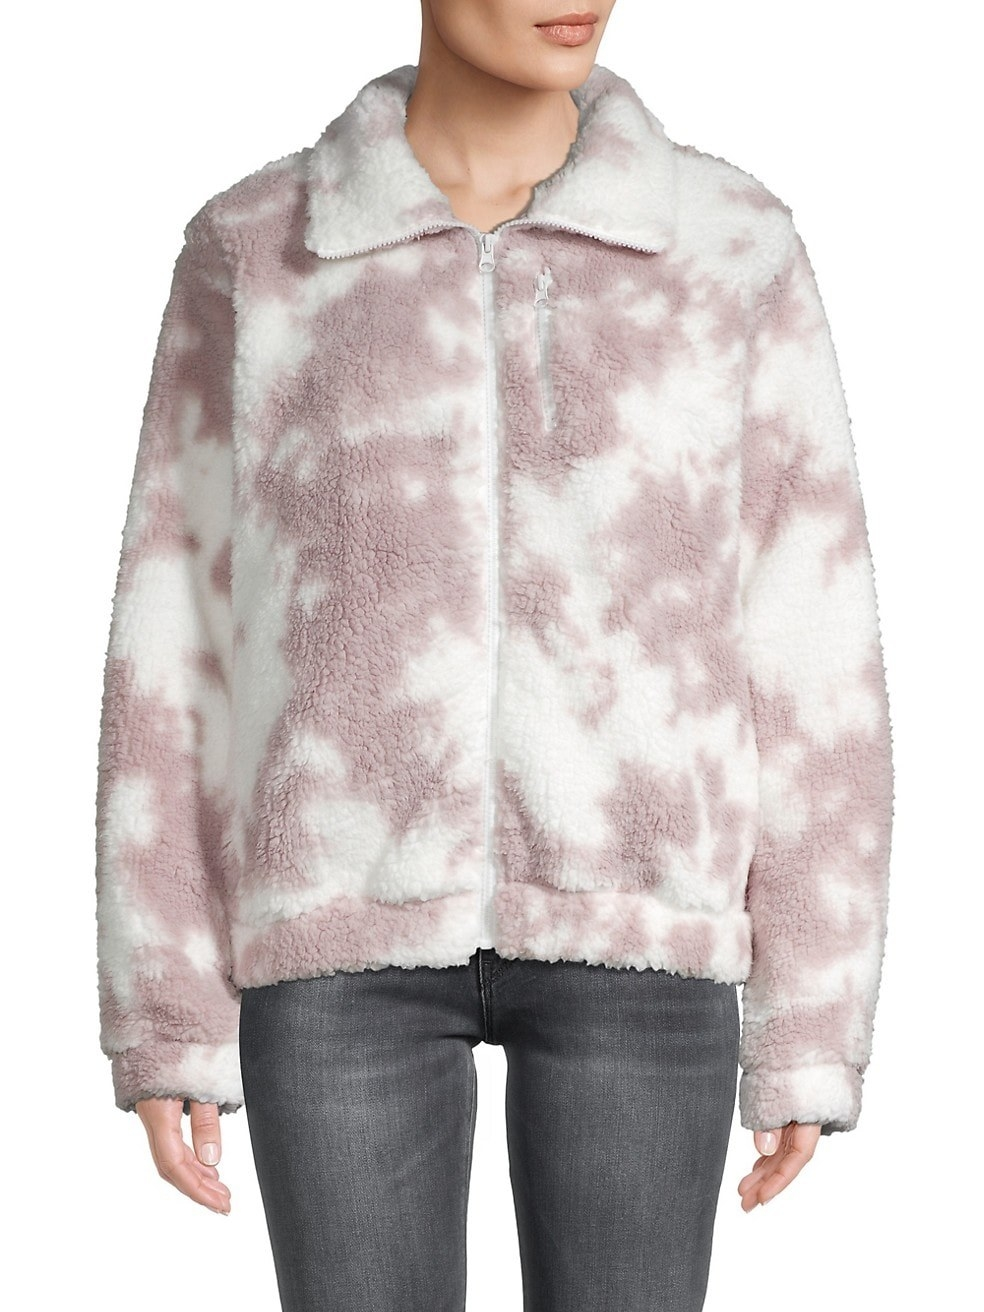 Model in the hip-length pink and white tie dye zip-front jacket